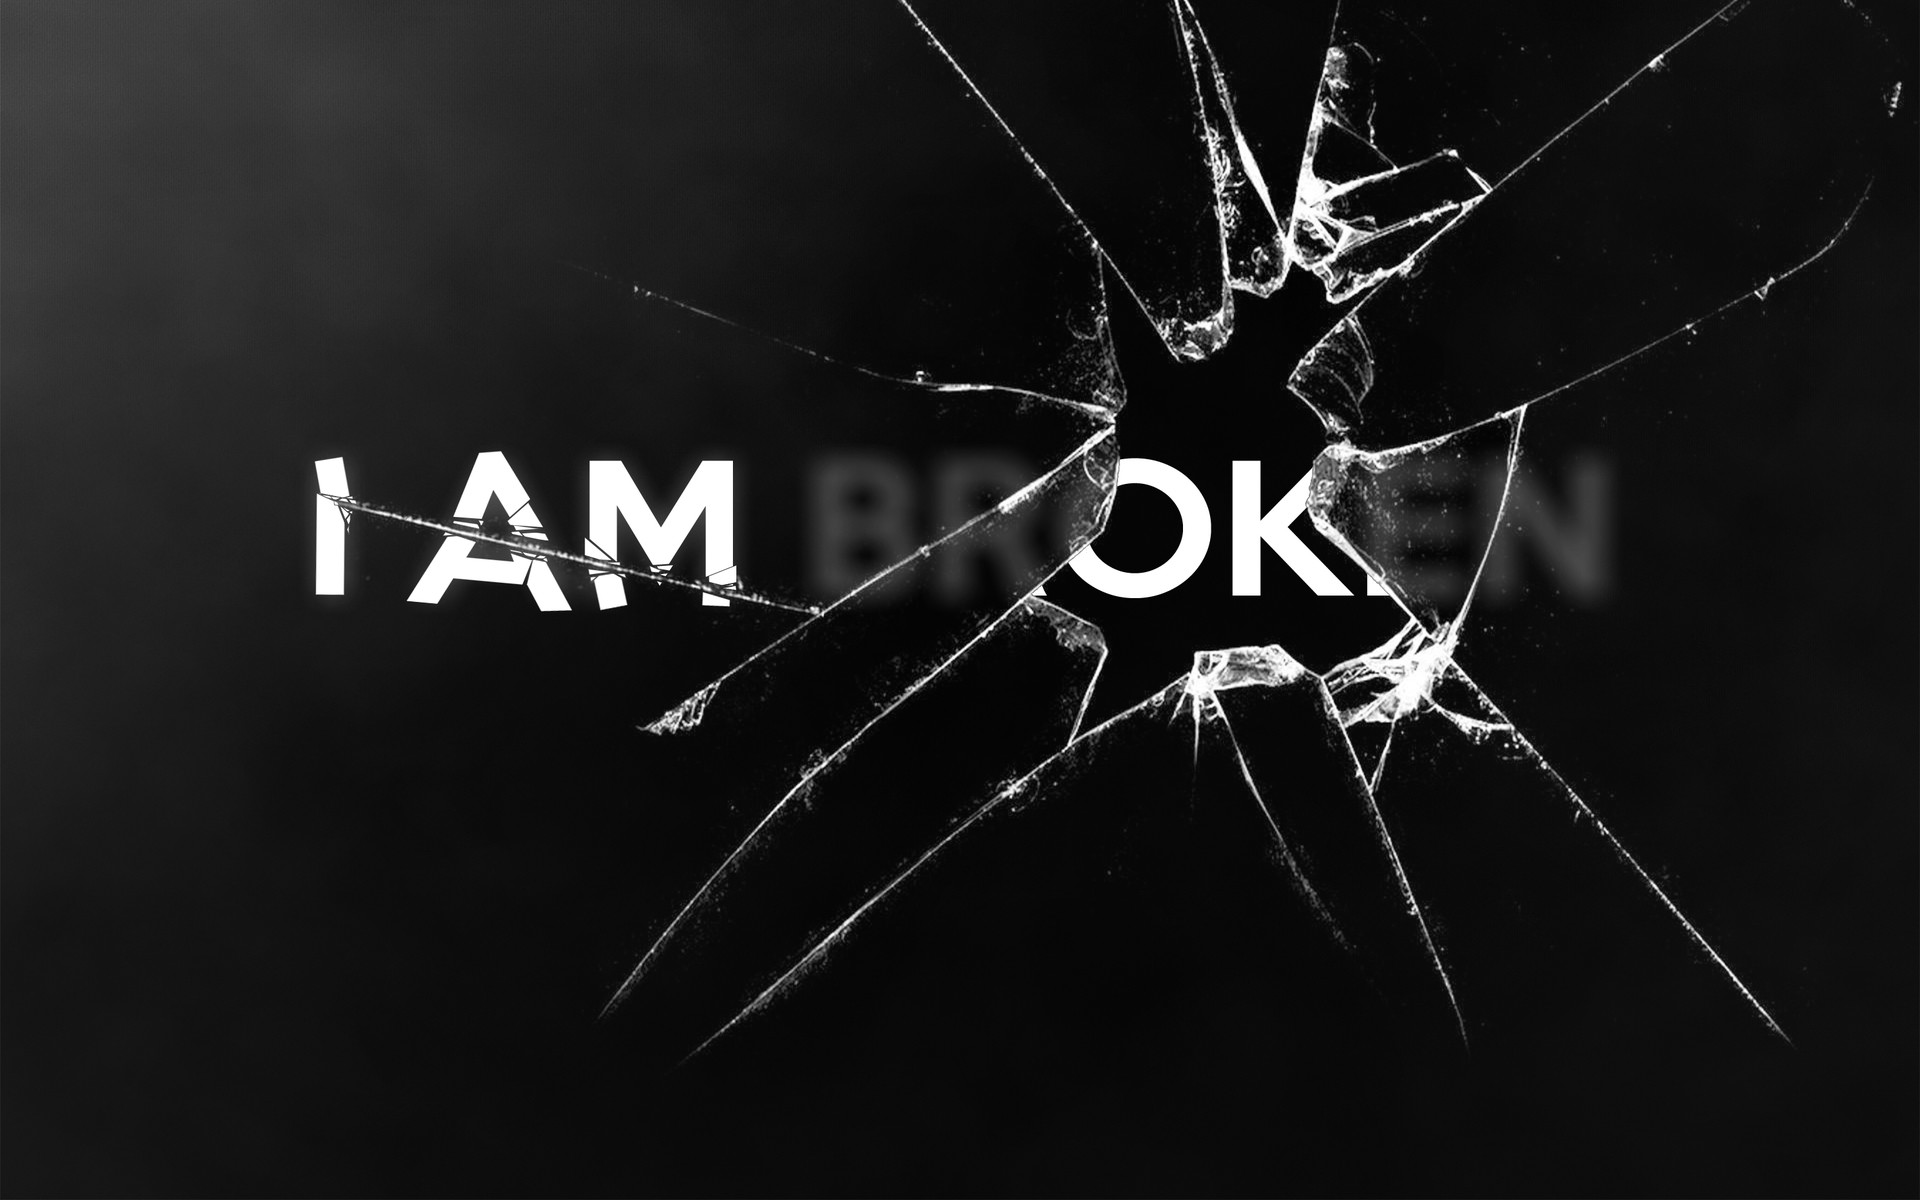 1920x1200 I am Broken I am Ok Glass Scattered Poster Text